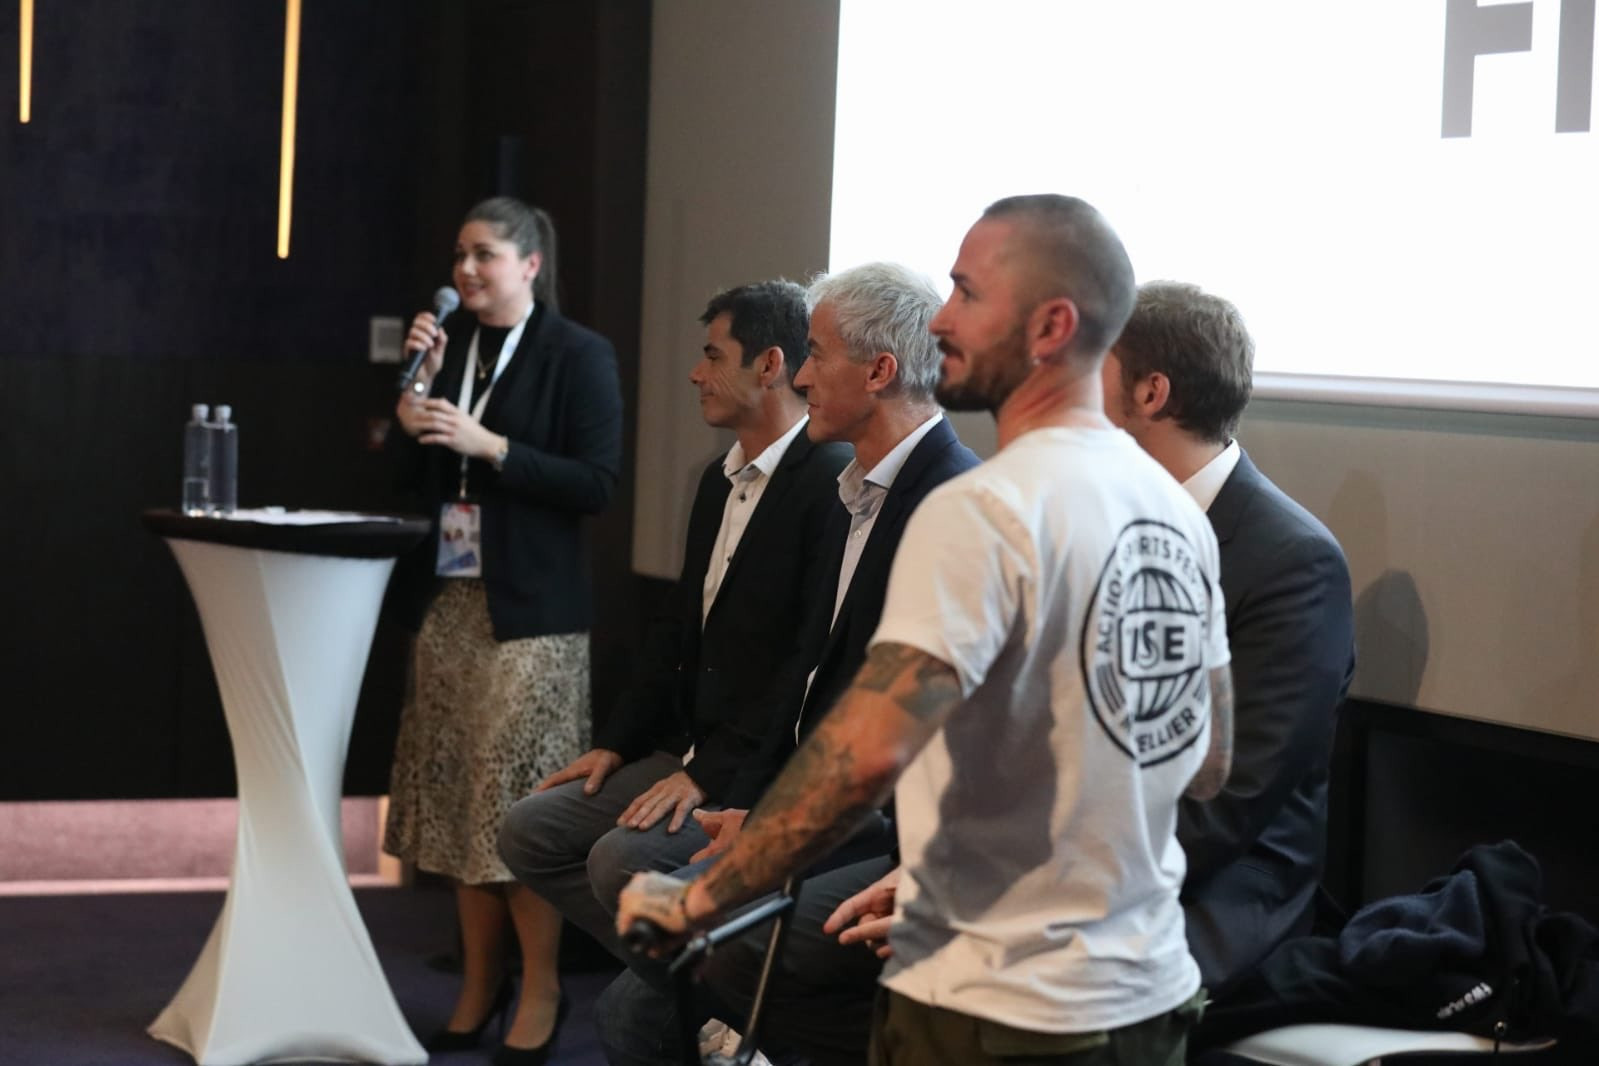 Urban sports and human rights discussed on opening day of Peace and Sport Forum